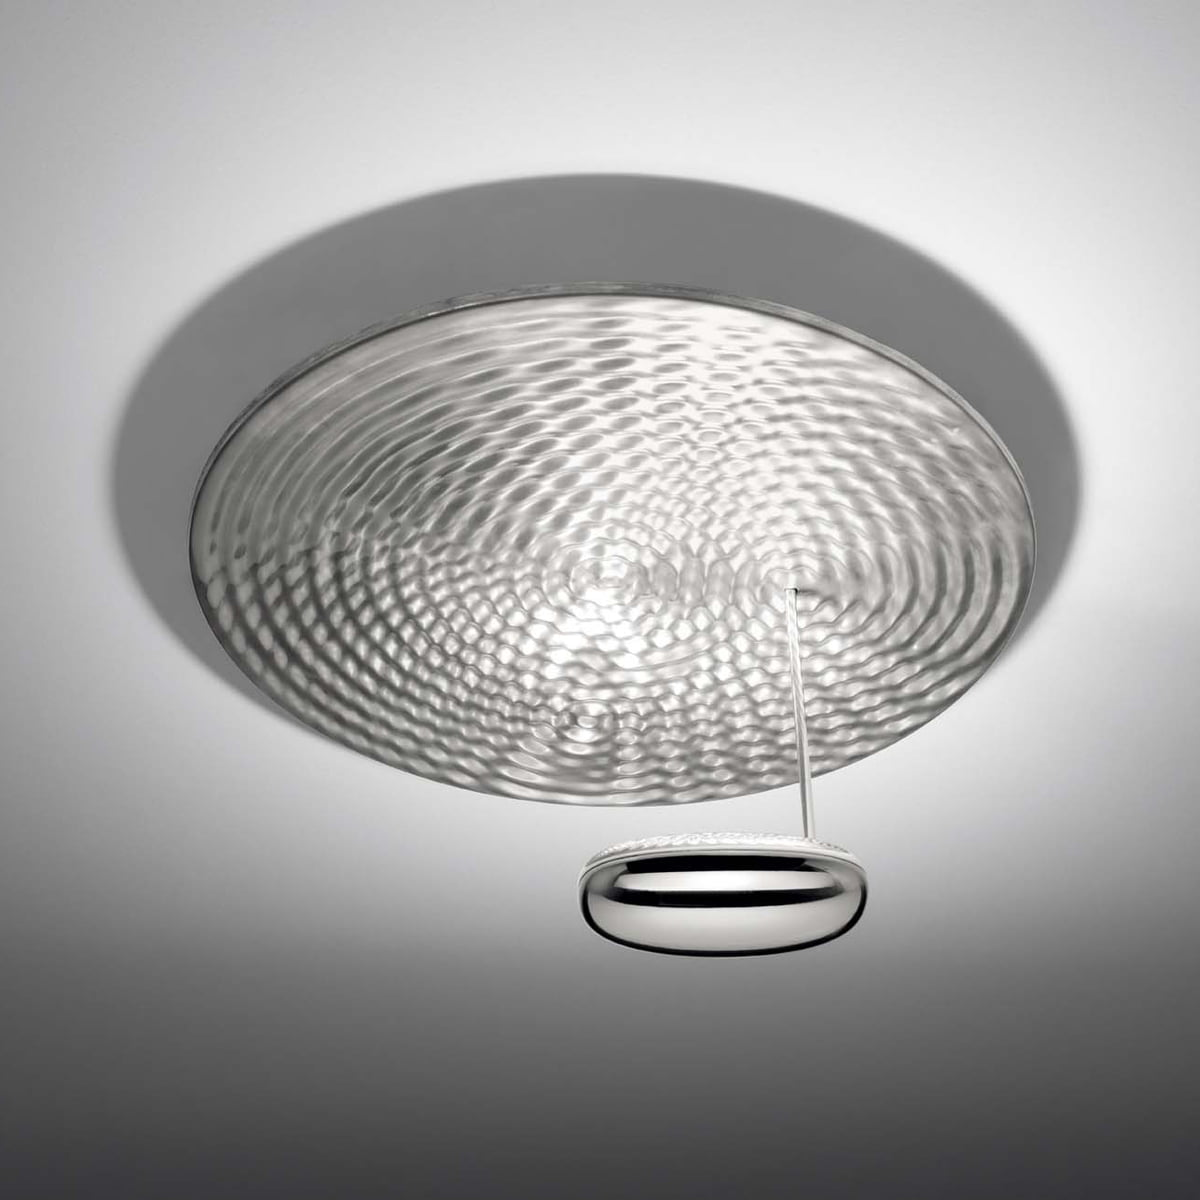 Soffitto A Led.Artemide Droplet Soffitto Led Ceiling Lamp Chrome Aluminium Grey